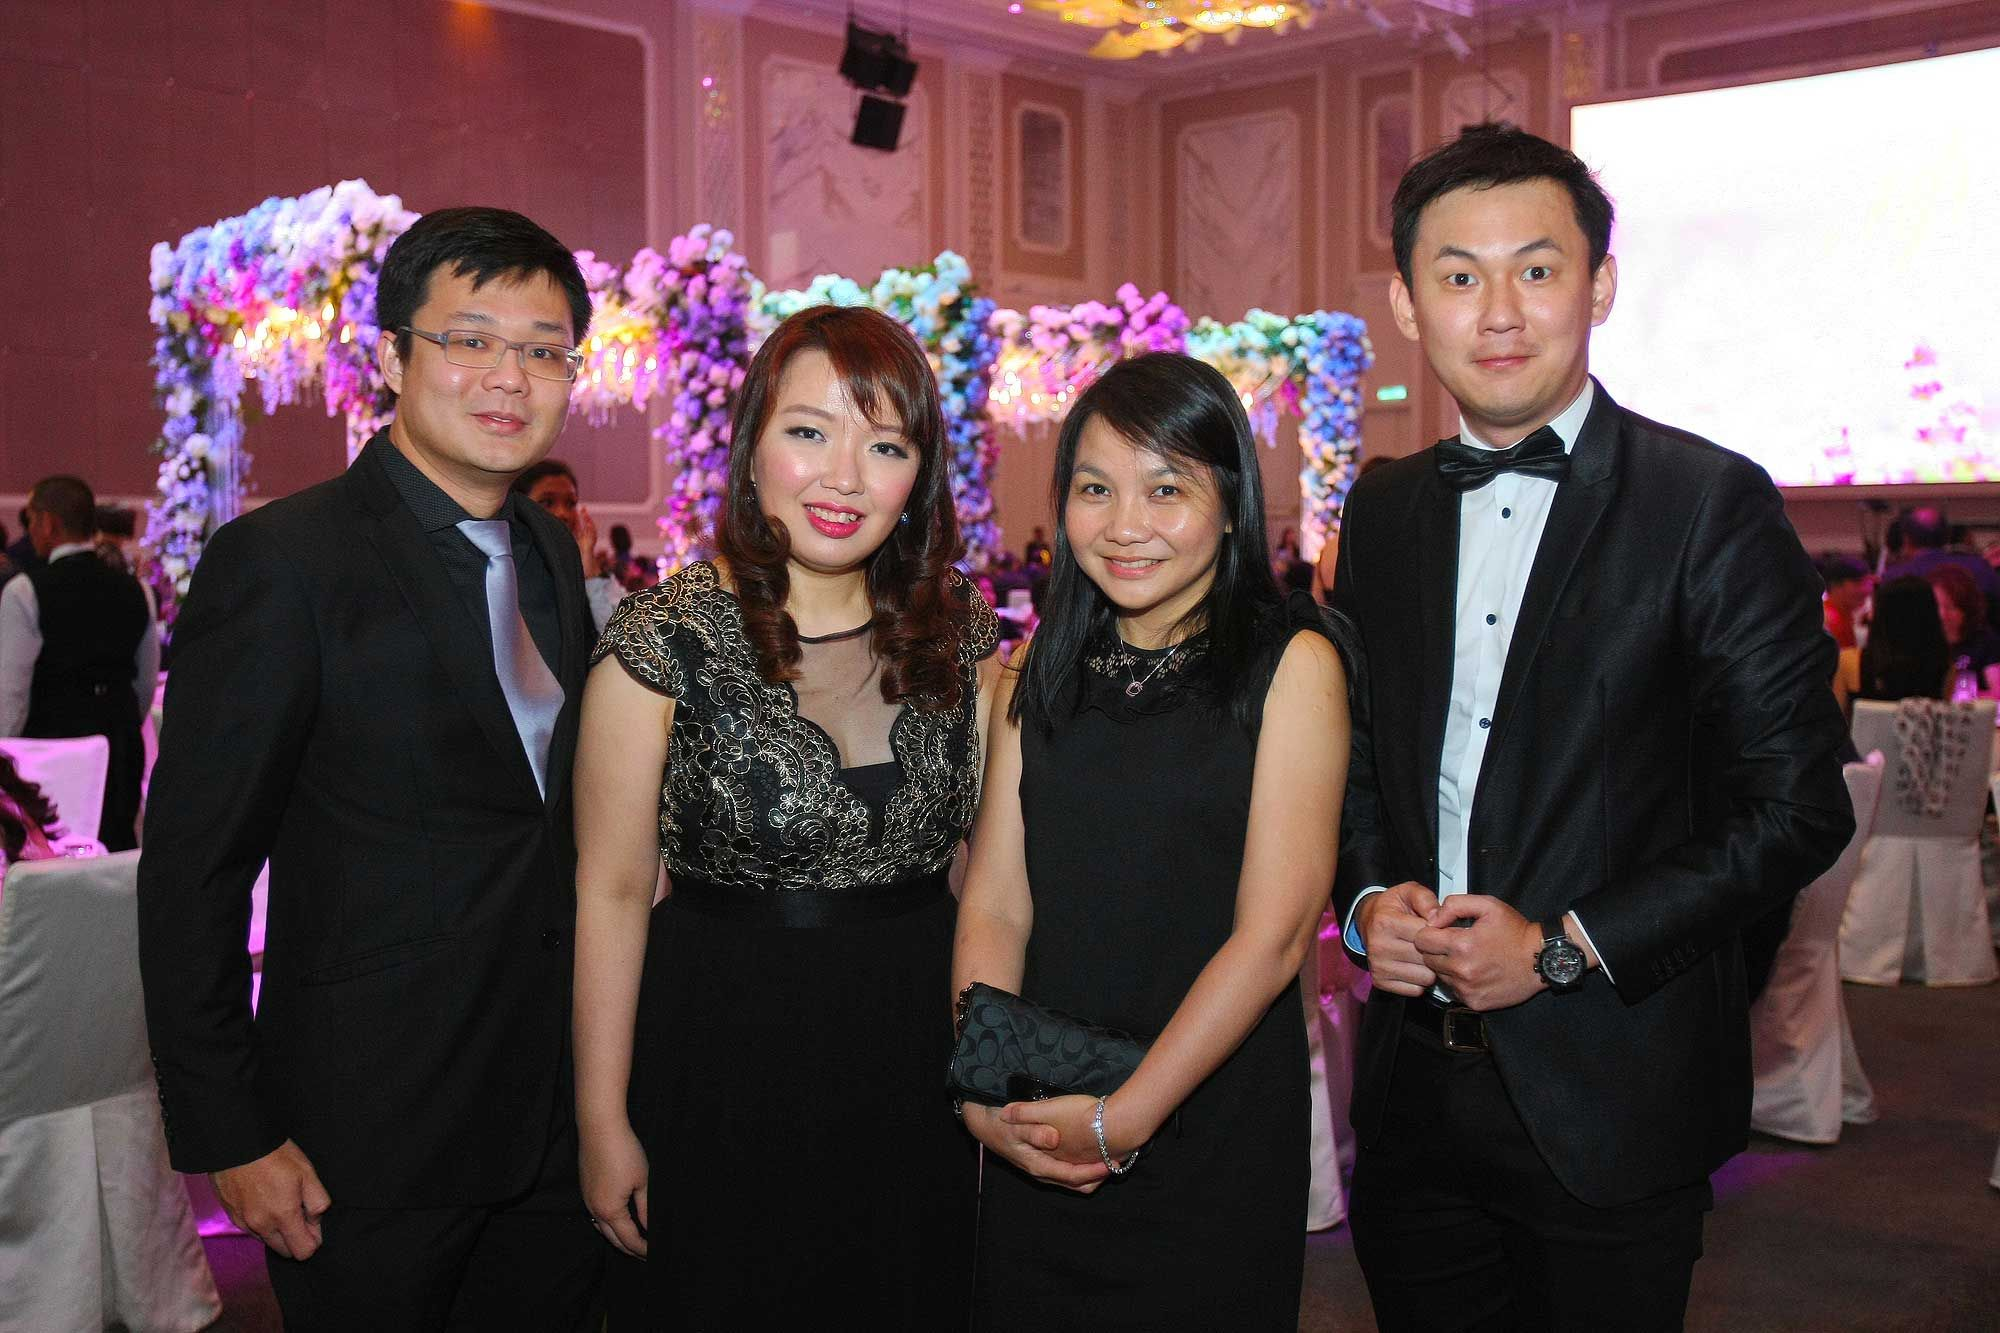 Lawrence Yong, Jean Toh, Ng Mei San and Allan Cheong